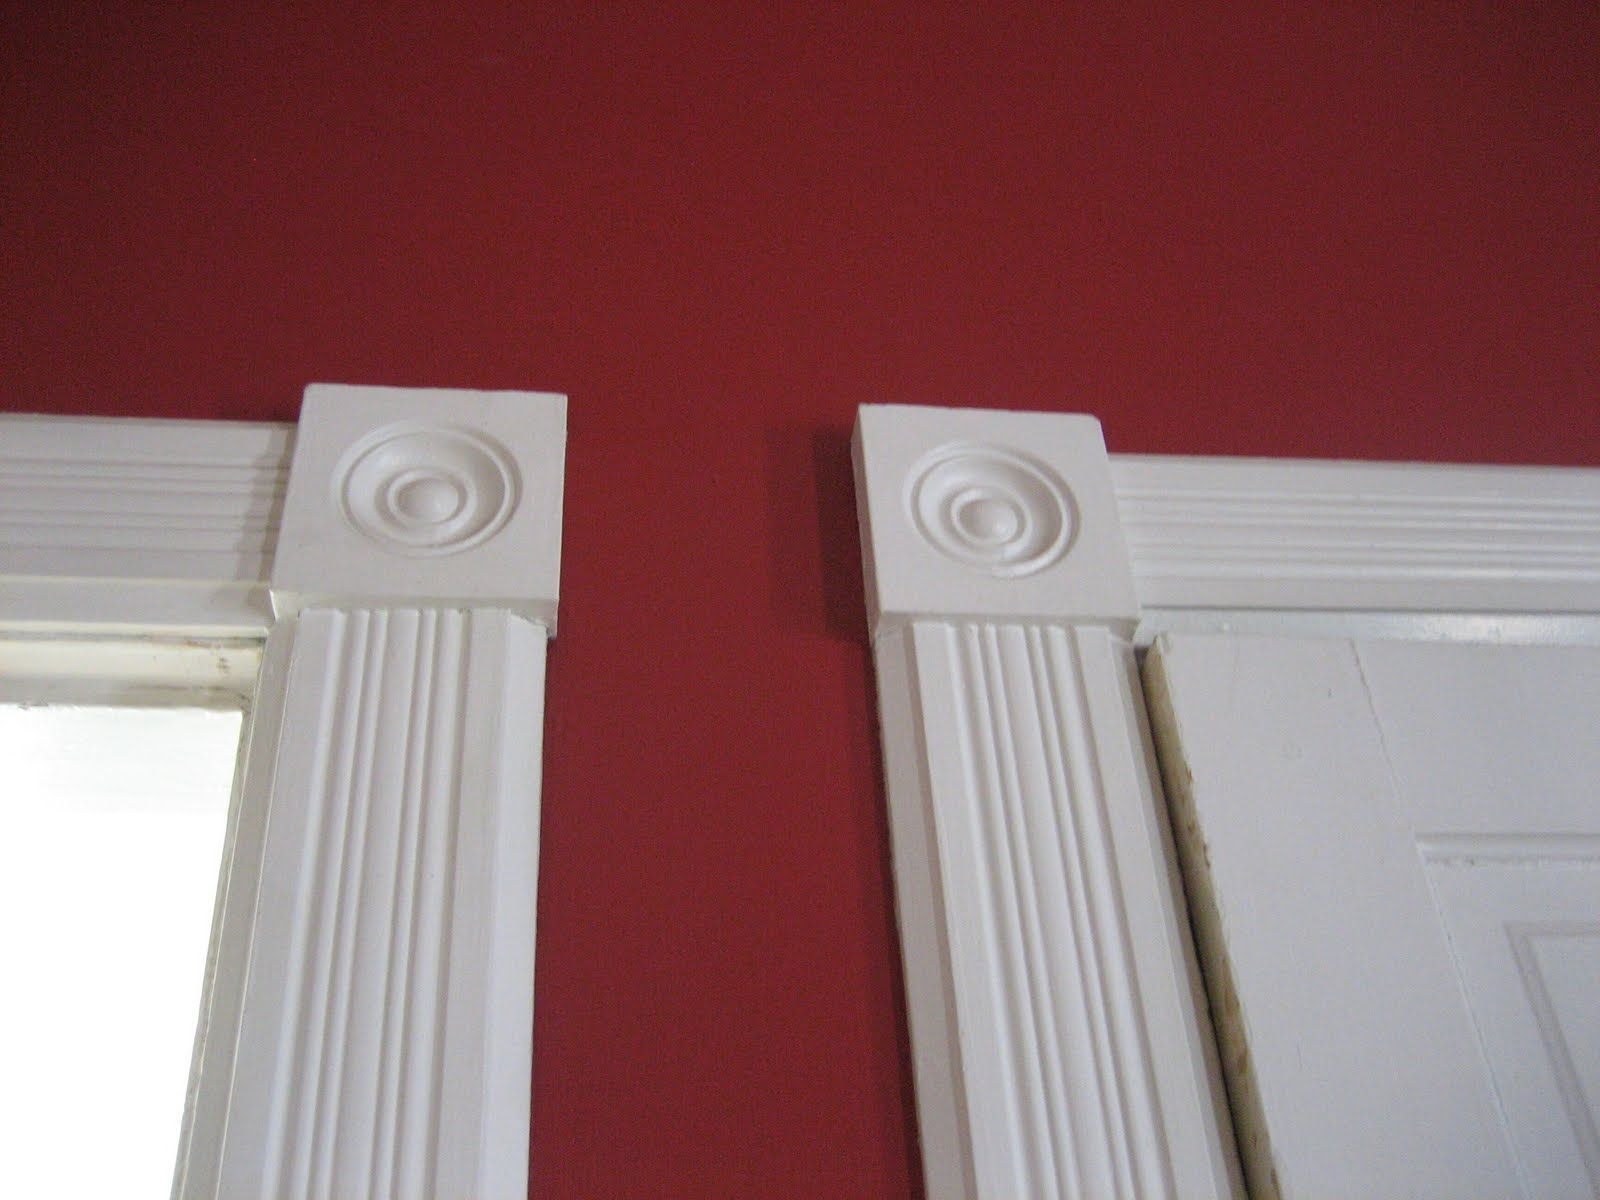 Molding amp trim find baseboard and crown molding designs online - Modern Life In An Antique Farmhouse Selecting Door And Window Casings